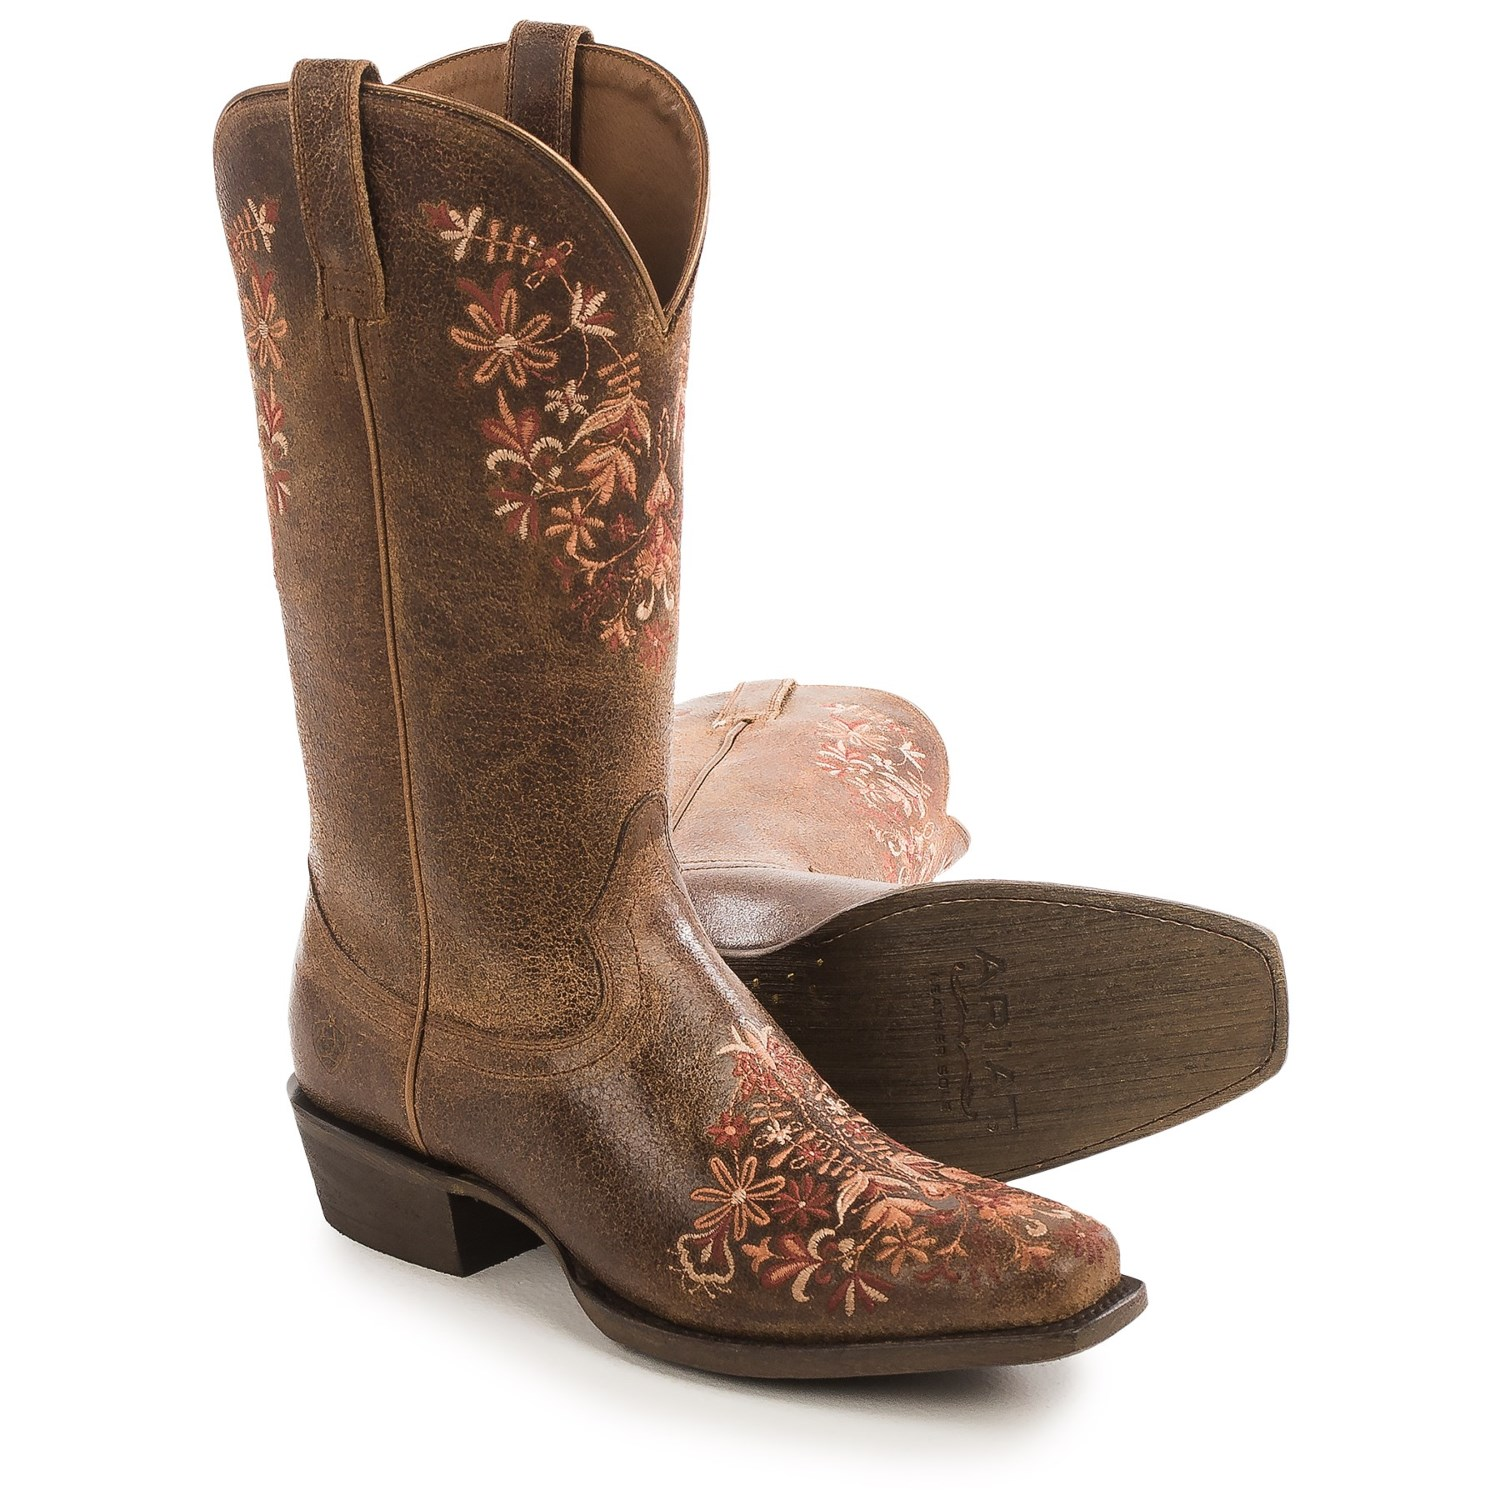 Ariat Ardent Cowboy Boots (For Women) - Save 34%